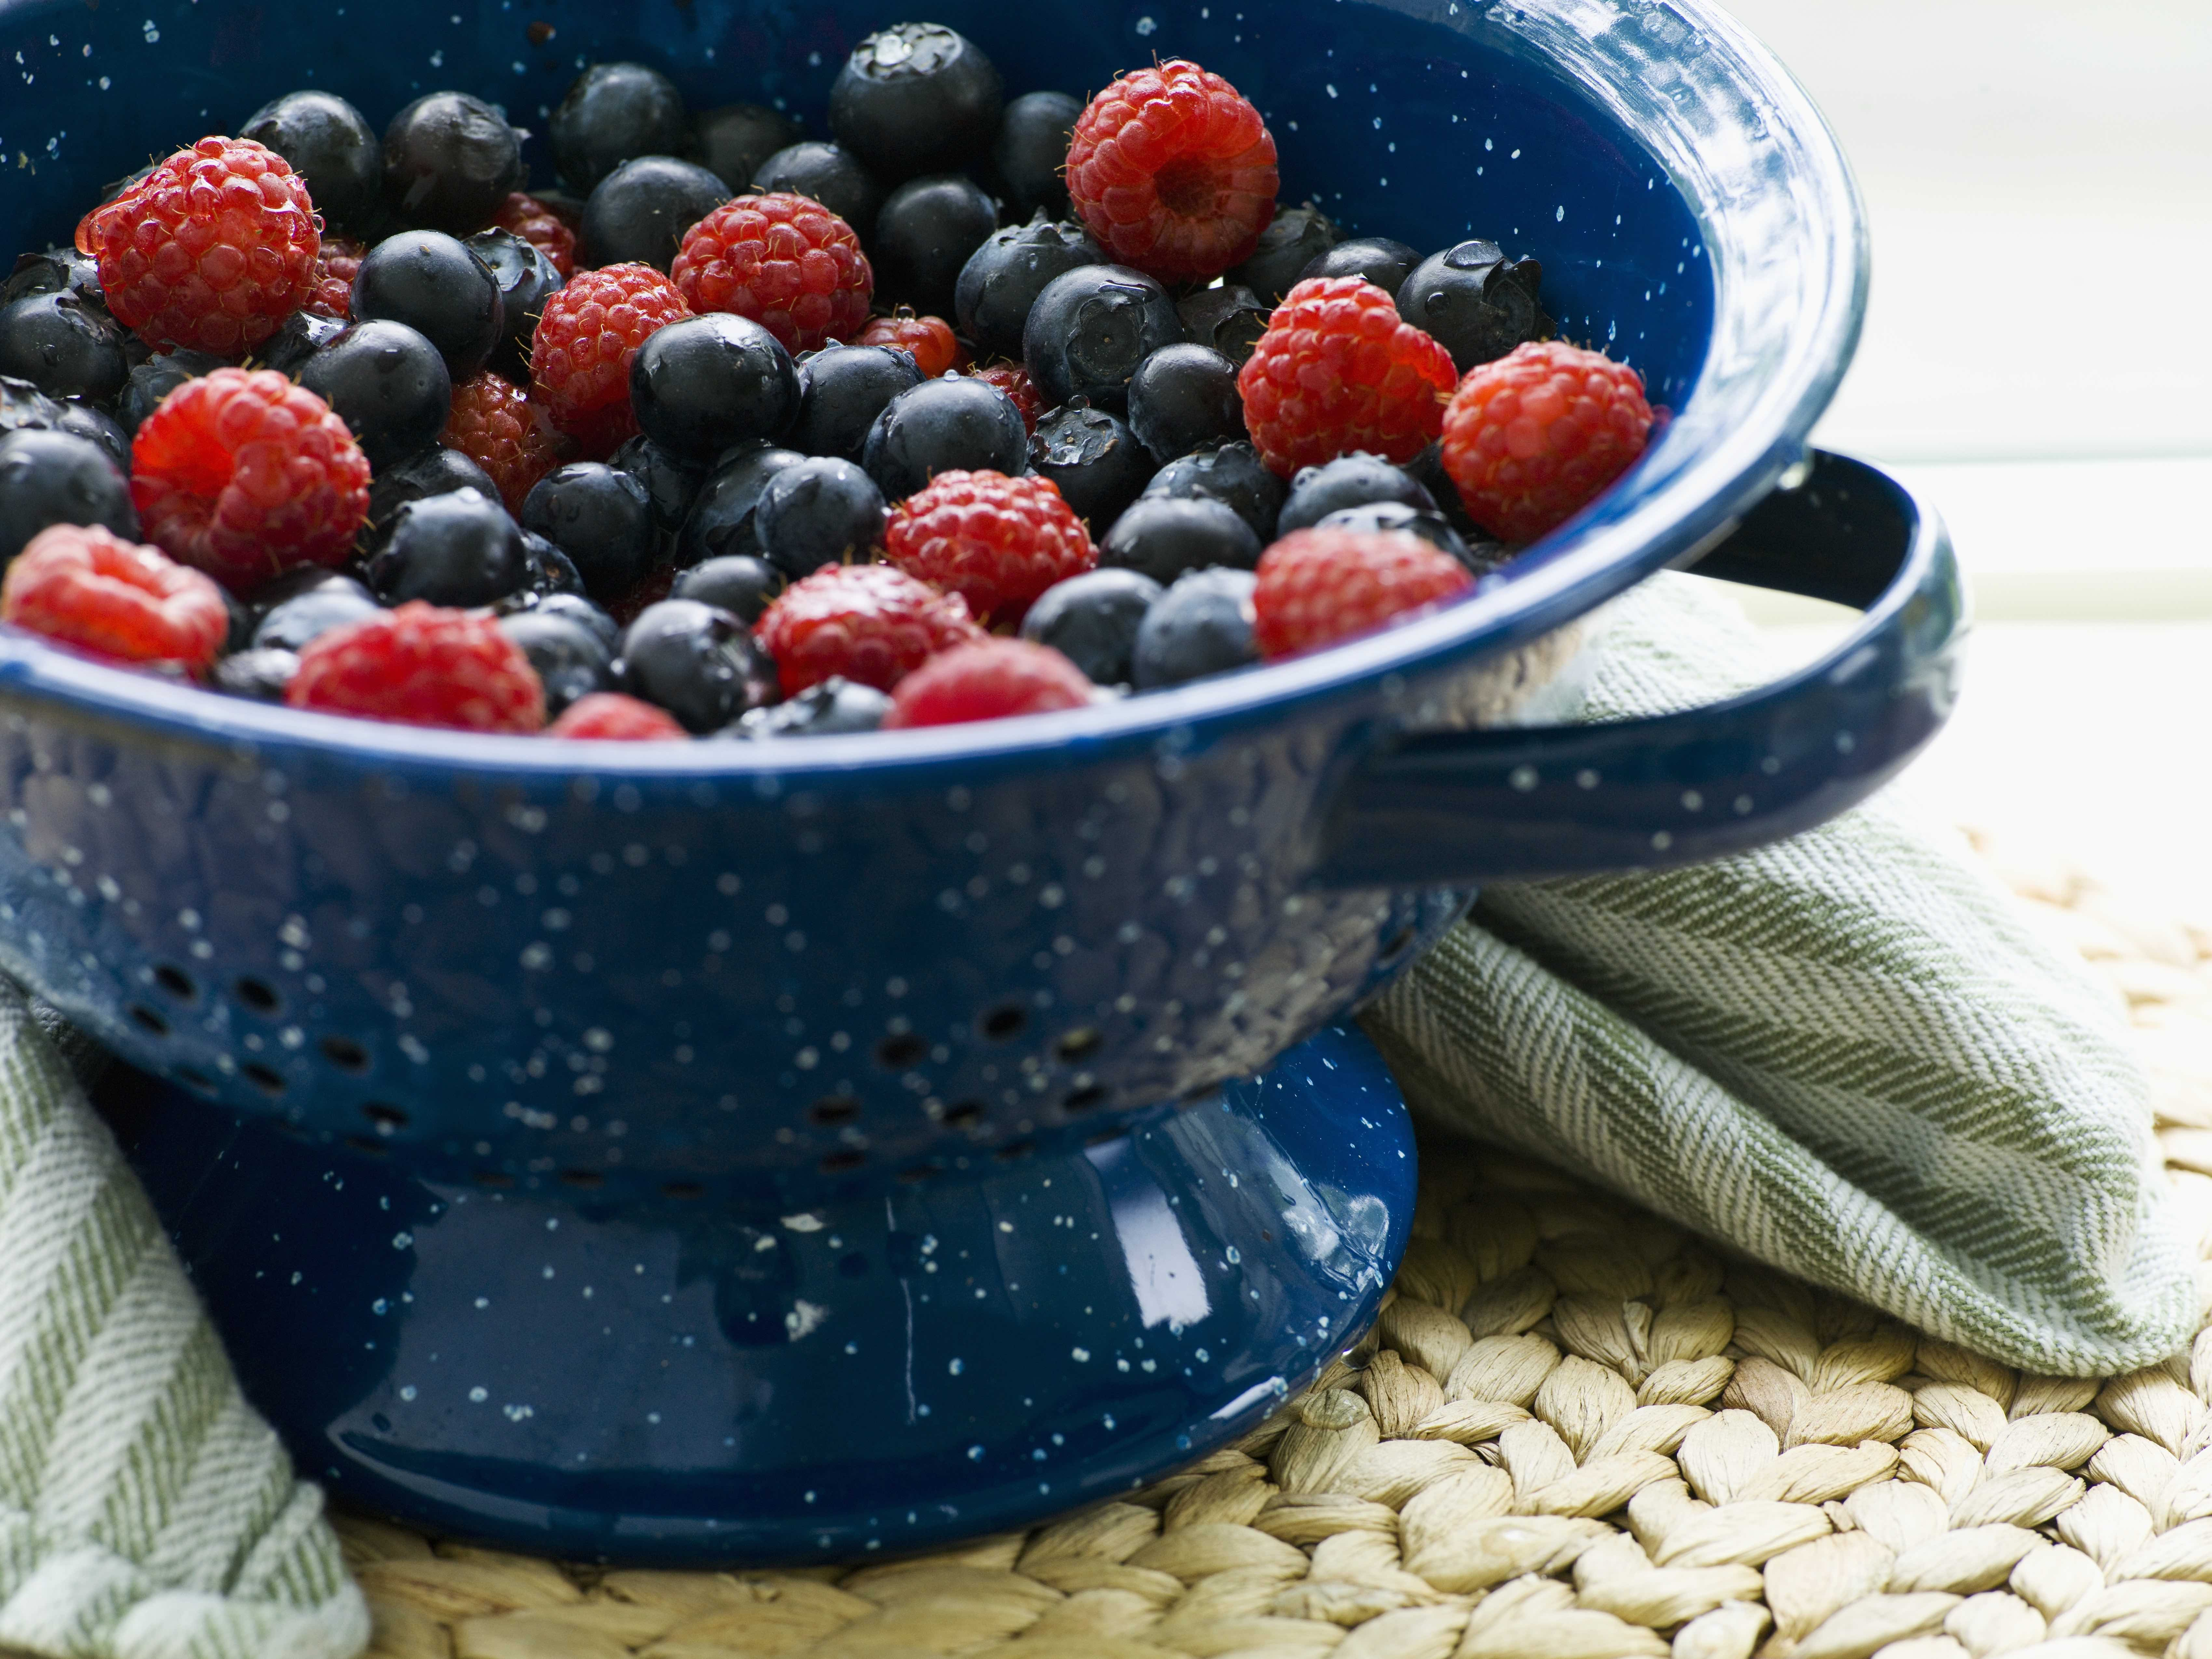 Nutrition: Most People Need More Fruits, Vegetables - Bon Secours